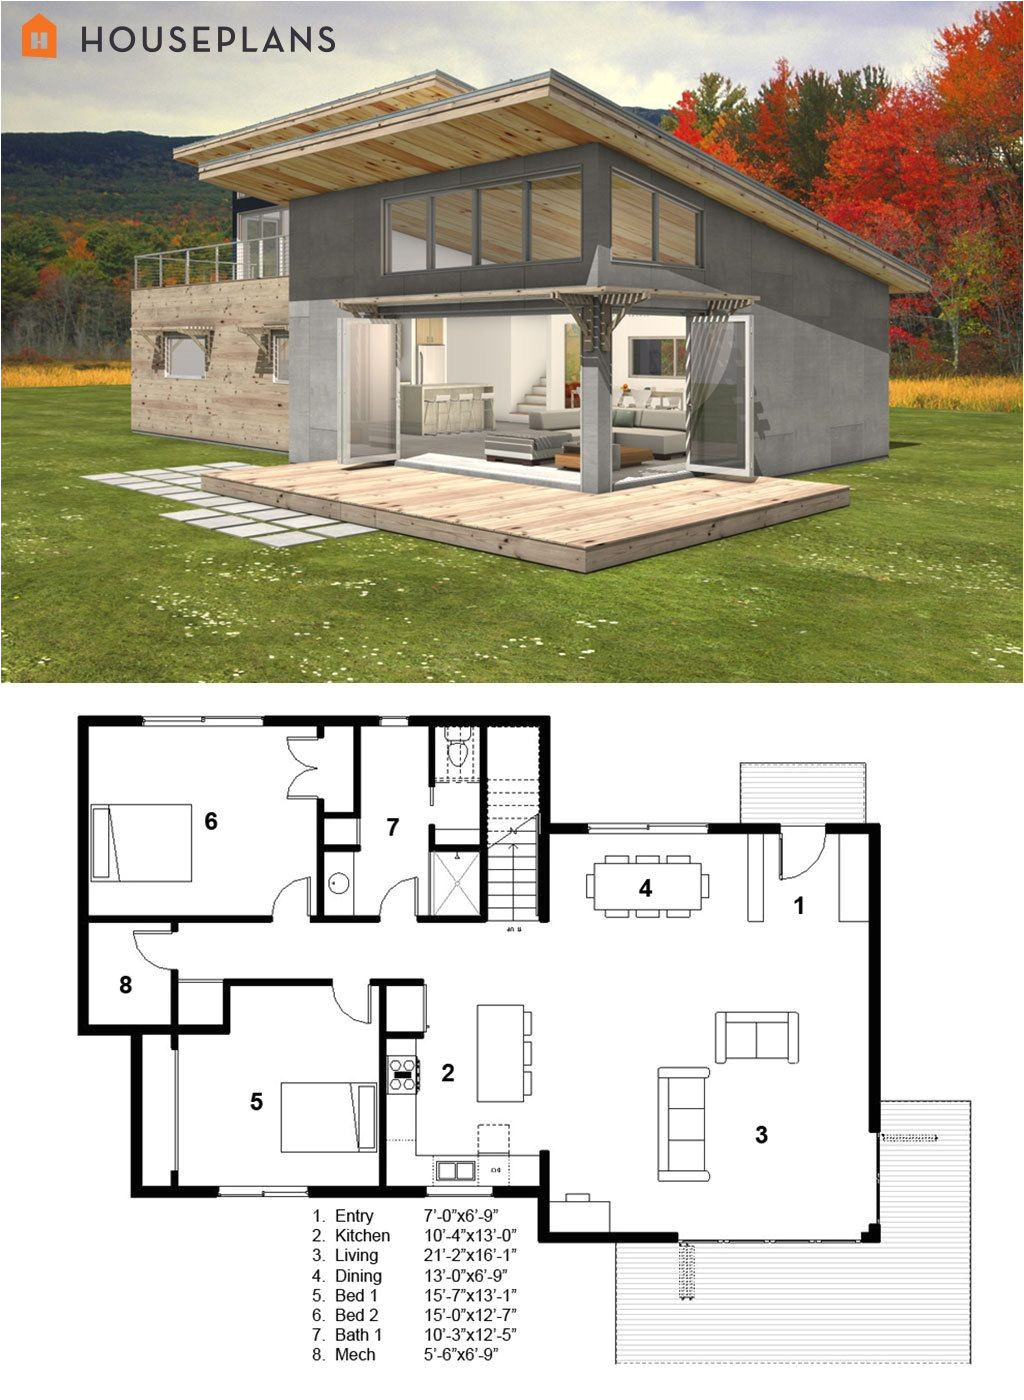 sustainable home plans lovely modern style house plan 3 beds 2 00 baths 2115 sq ft plan 497 31